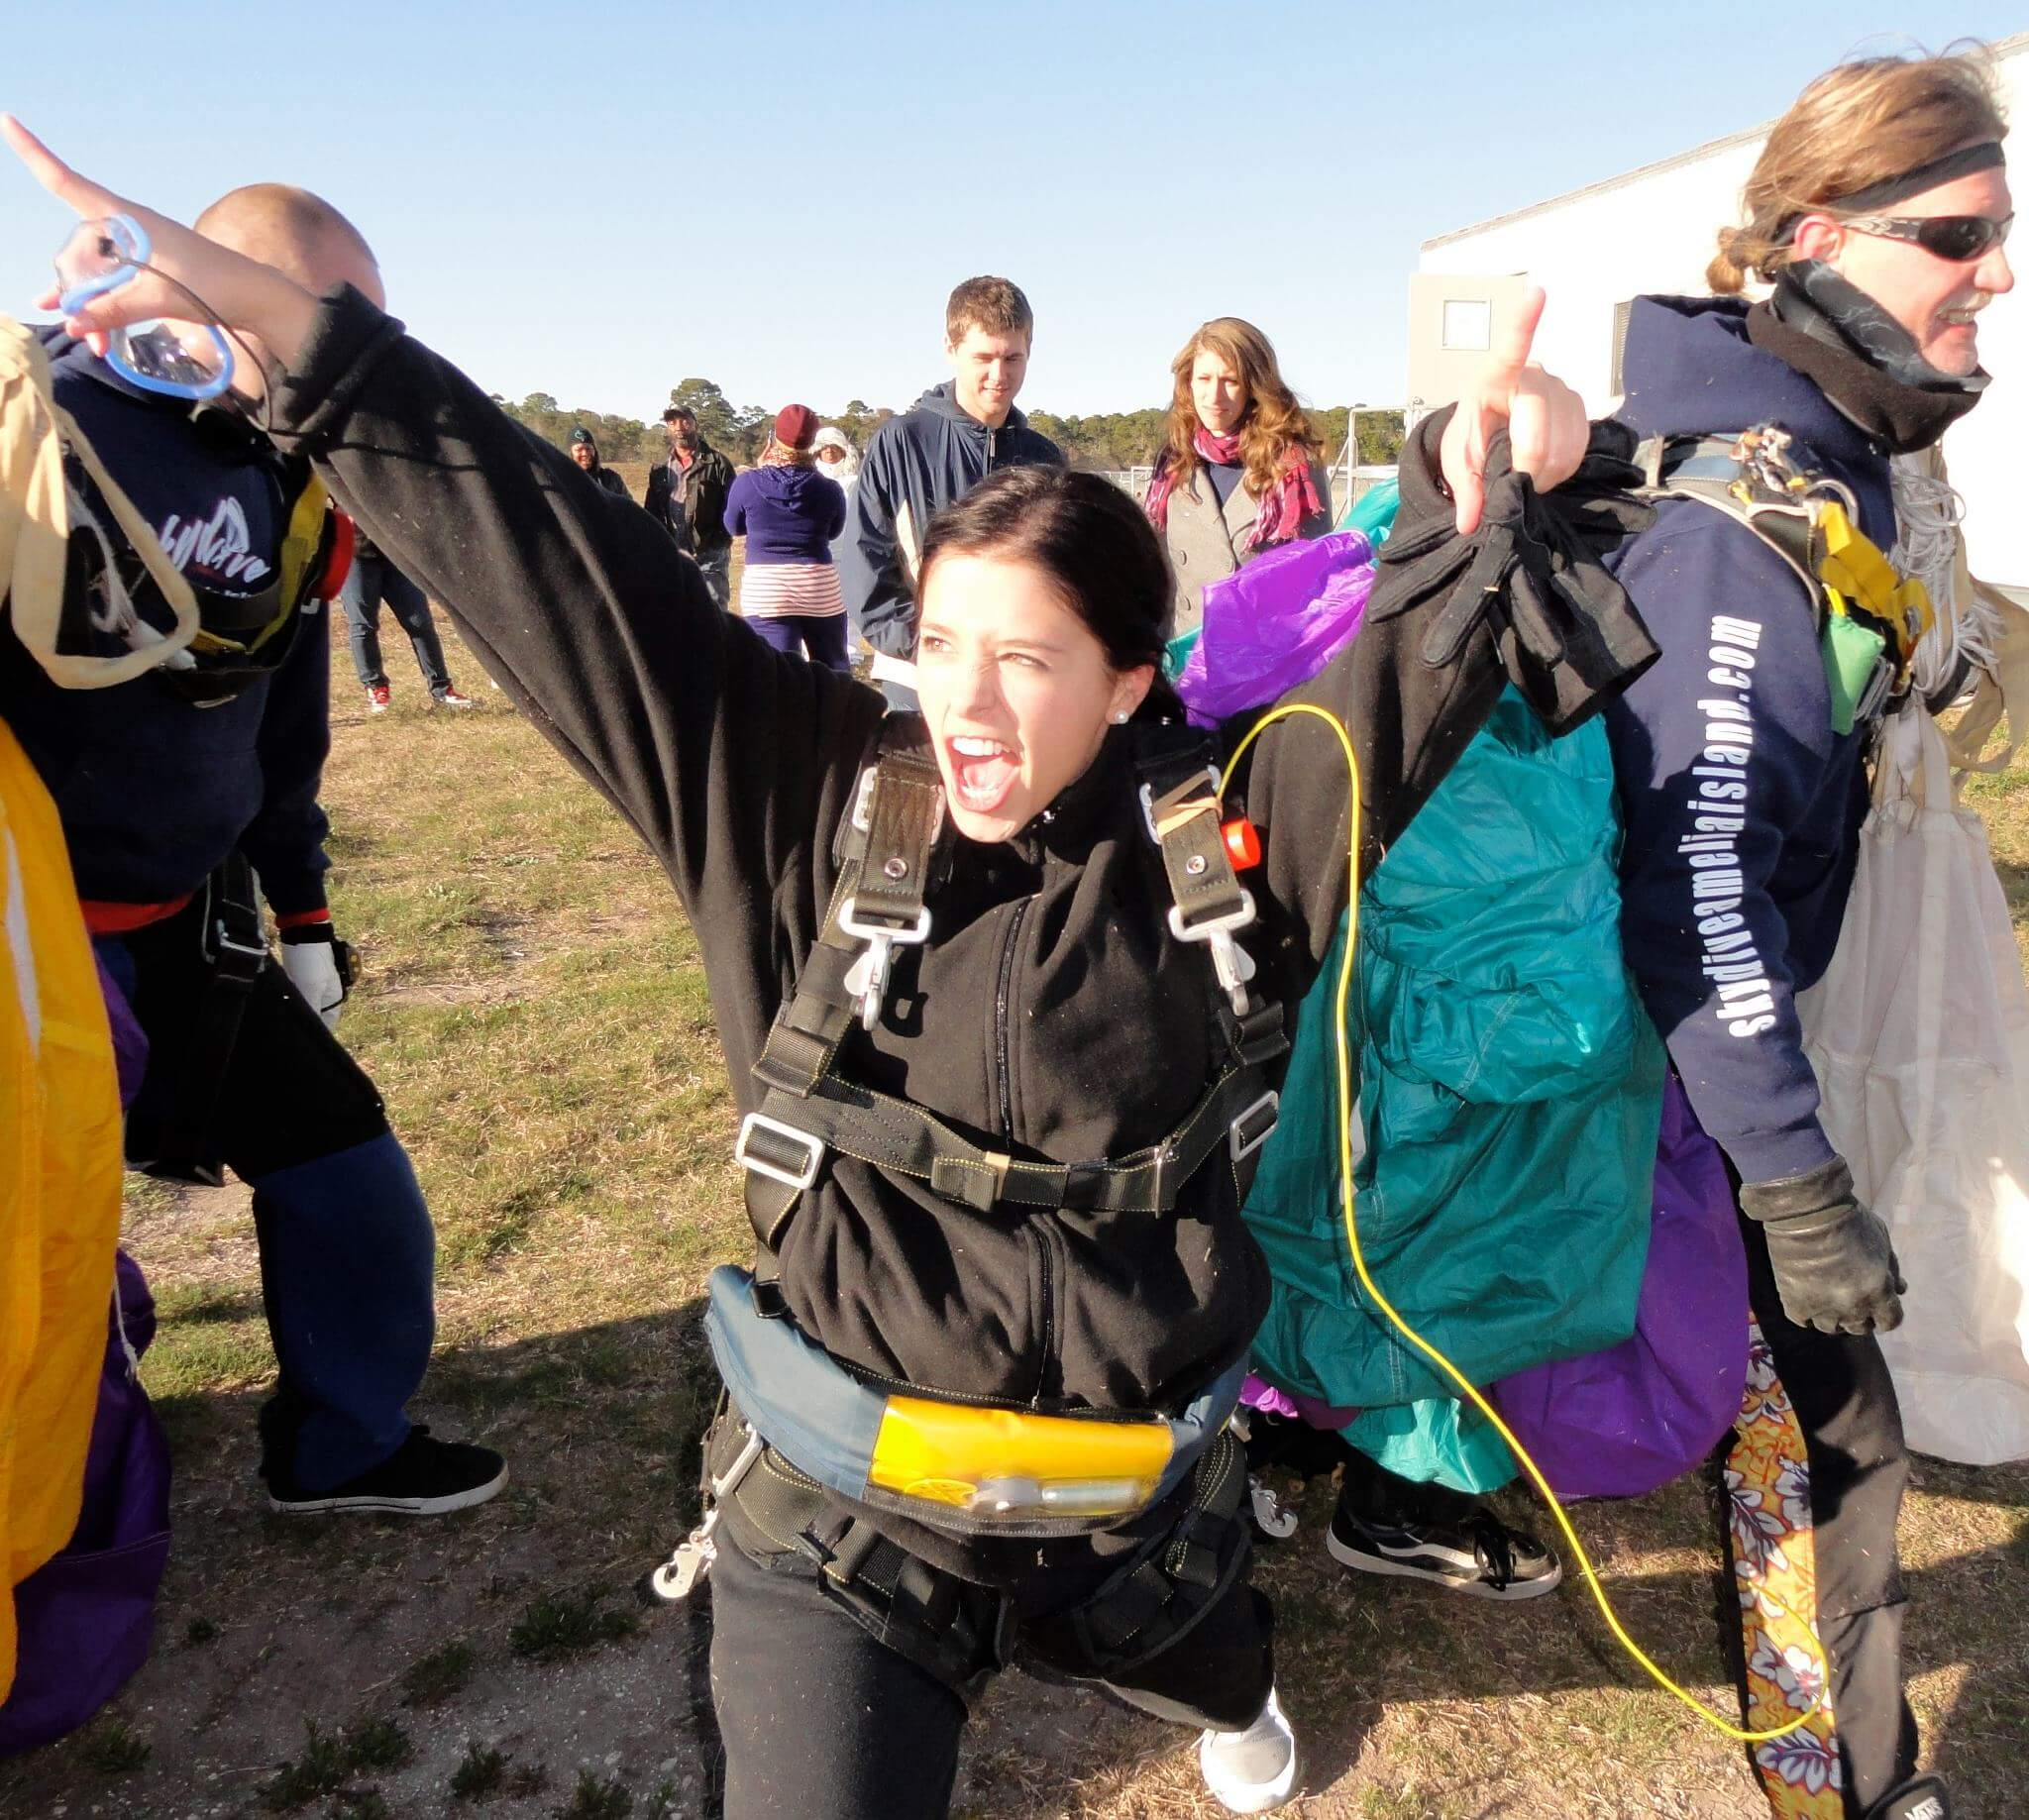 blog-top-5-adventures-before-25-skydiving-just-landed